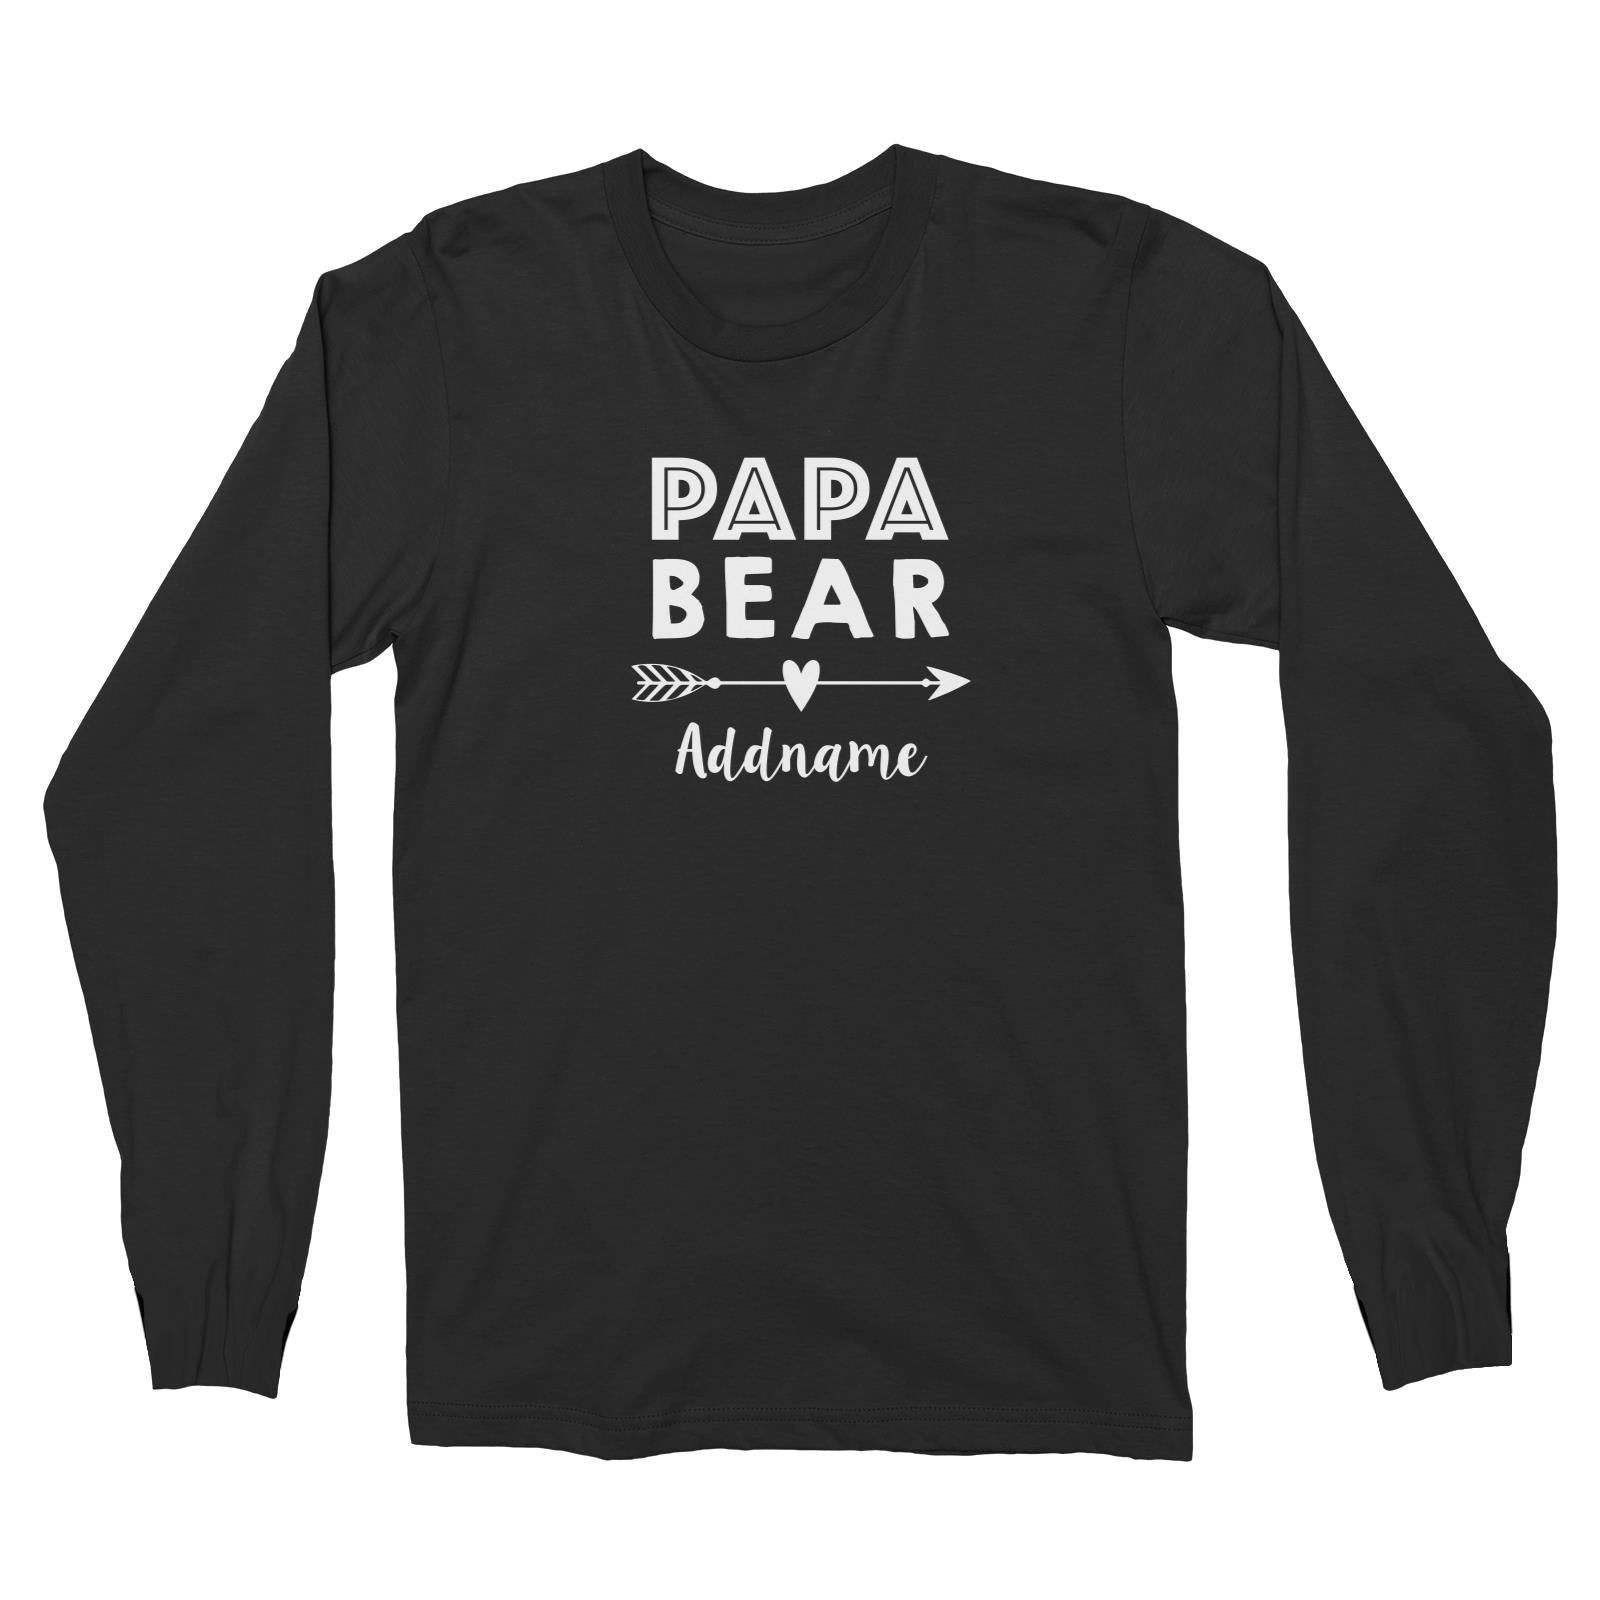 Papa Bear Addname Long Sleeve Unisex T-Shirt  Matching Family Personalizable Designs